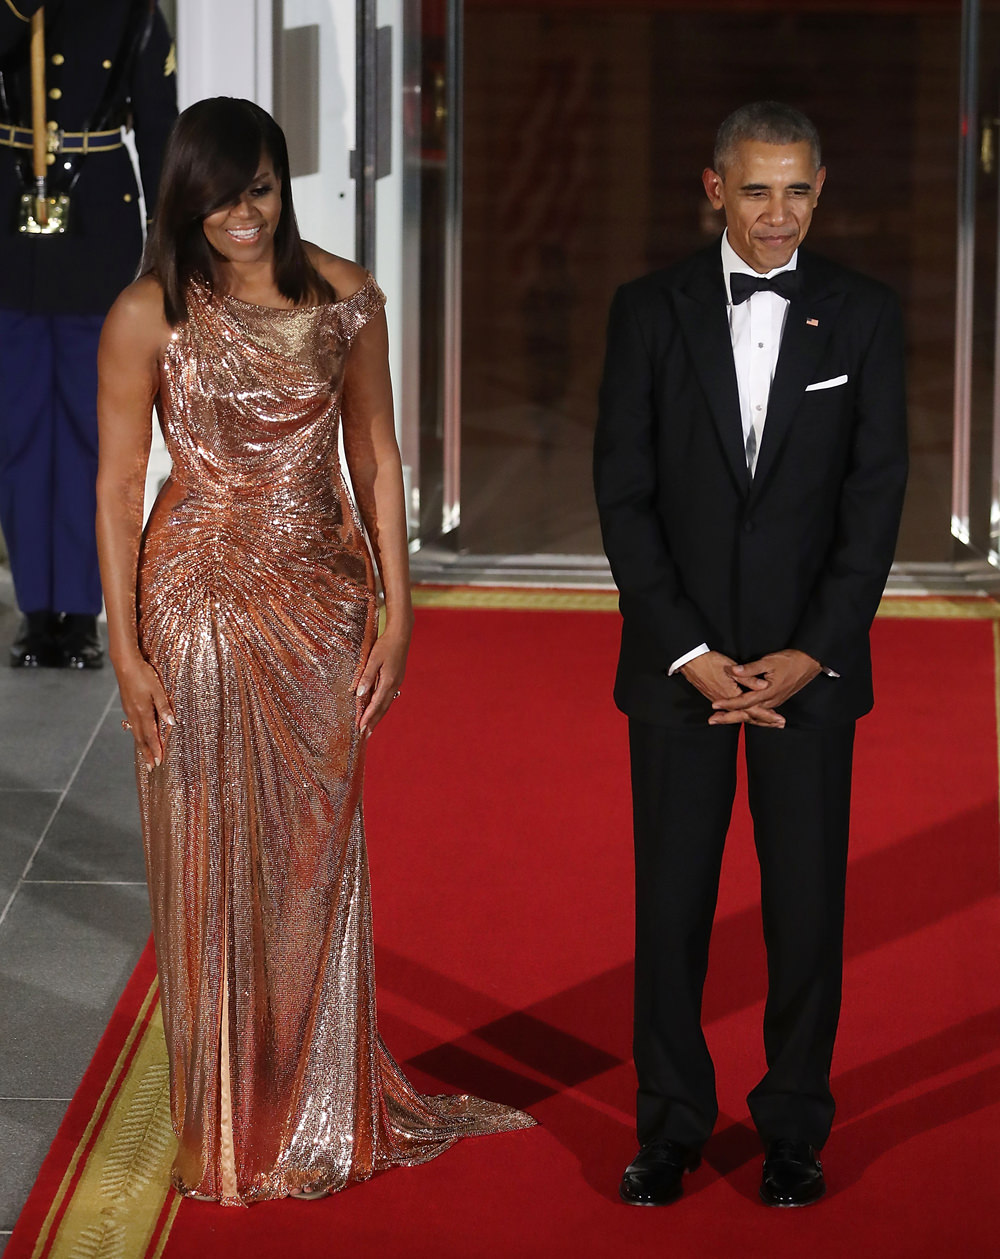 Michelle Obama and Barack Obama at the   White House state dinner, 2016. She wears a custom dress by Versace.   Photo source: Getty Images.